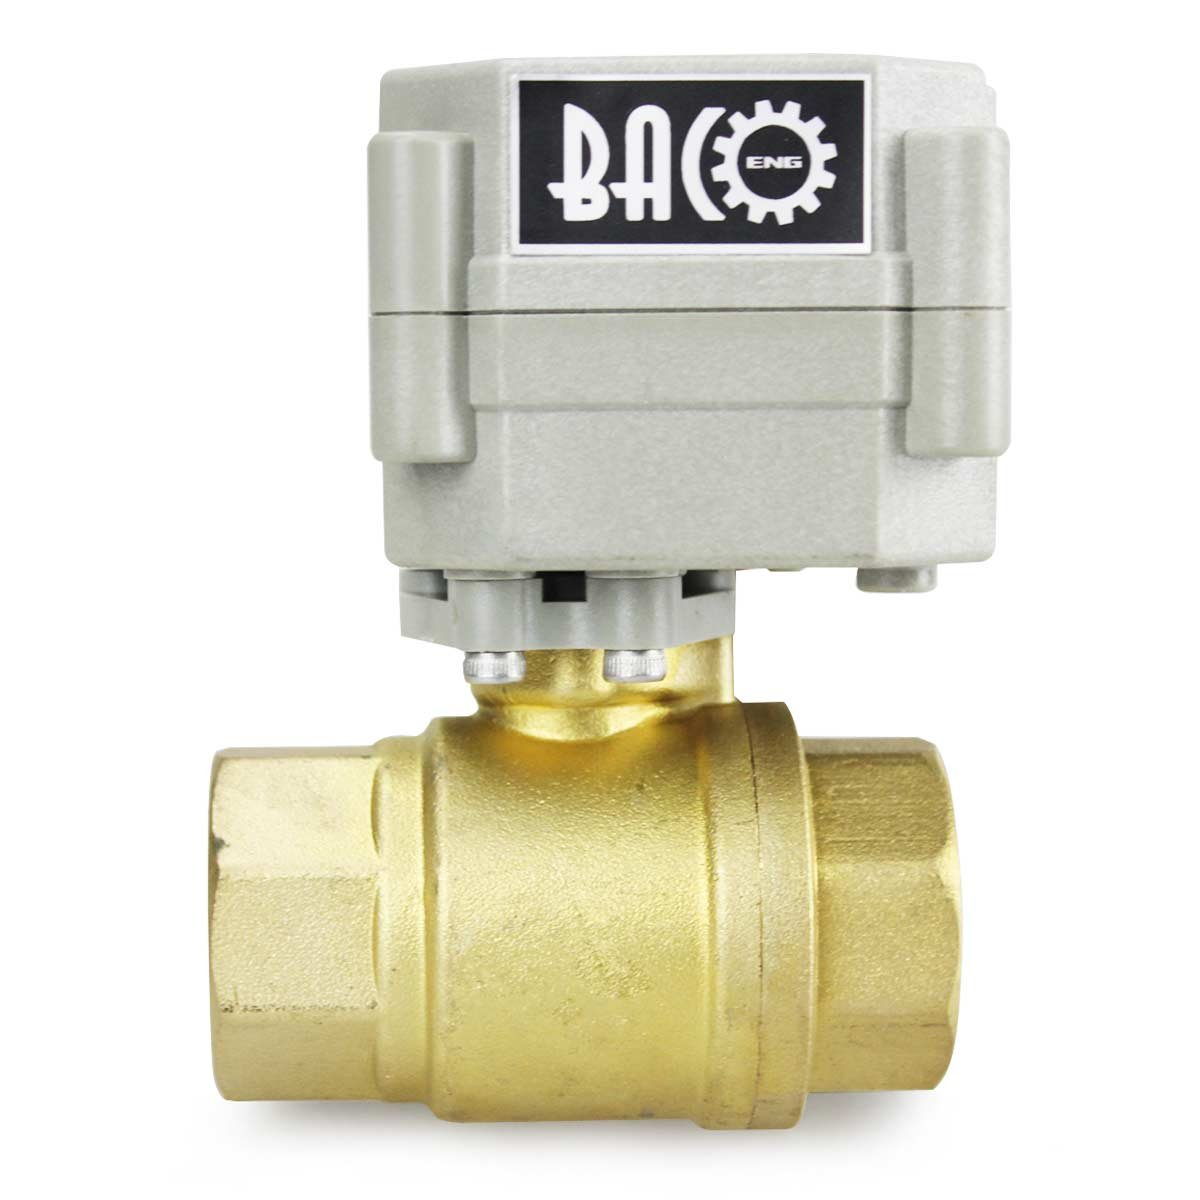 BACOENG 1 DN25 Brass BSP 2 Port Motorized Ball Valve AC110-230V CR202 2 Wires Normally Closed Electric Ball Valve